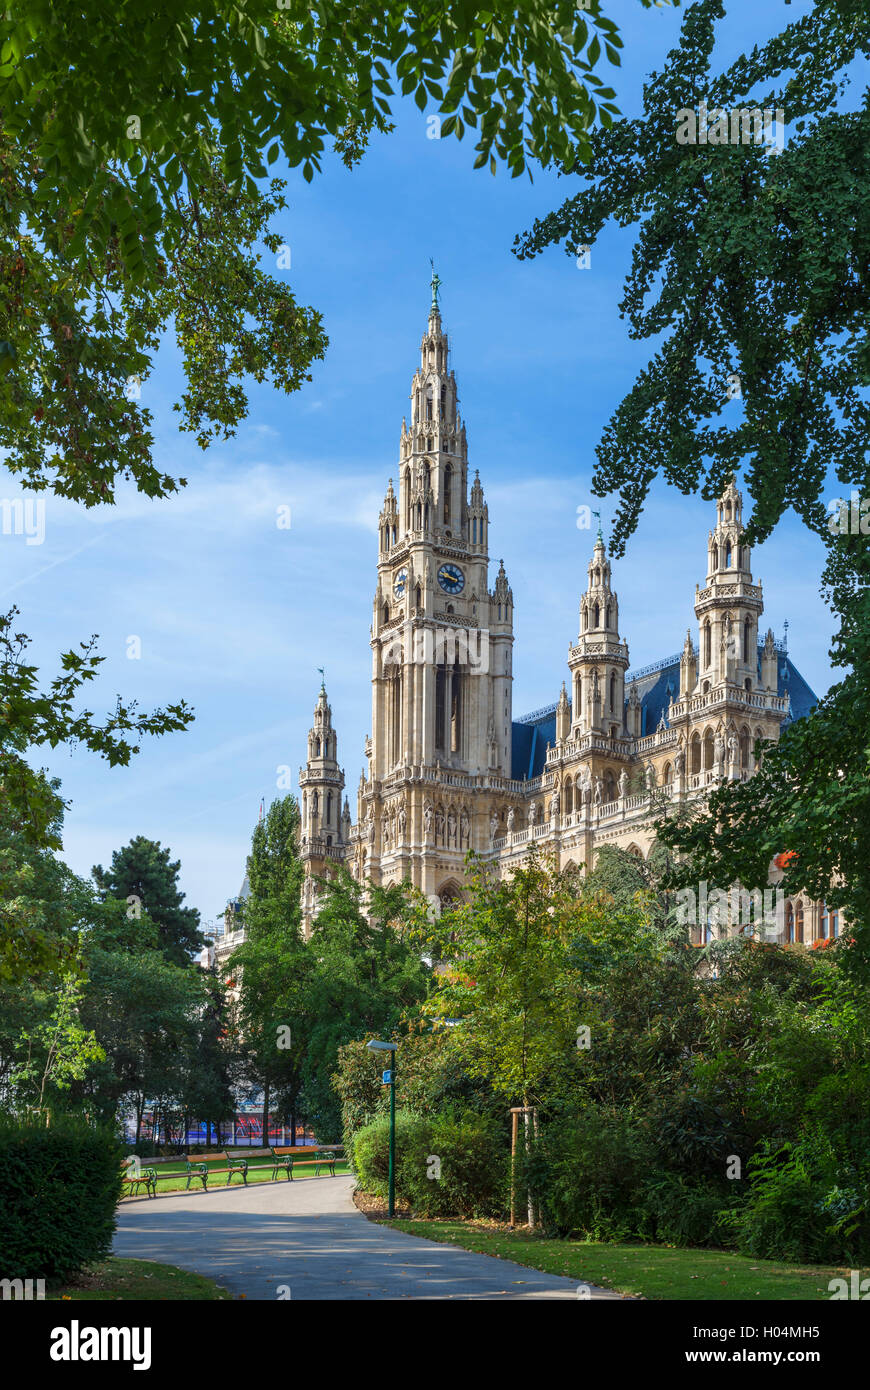 Vienna, Austria. The Neues Rathaus (New Town Hall) from Rathaus Park - Stock Image